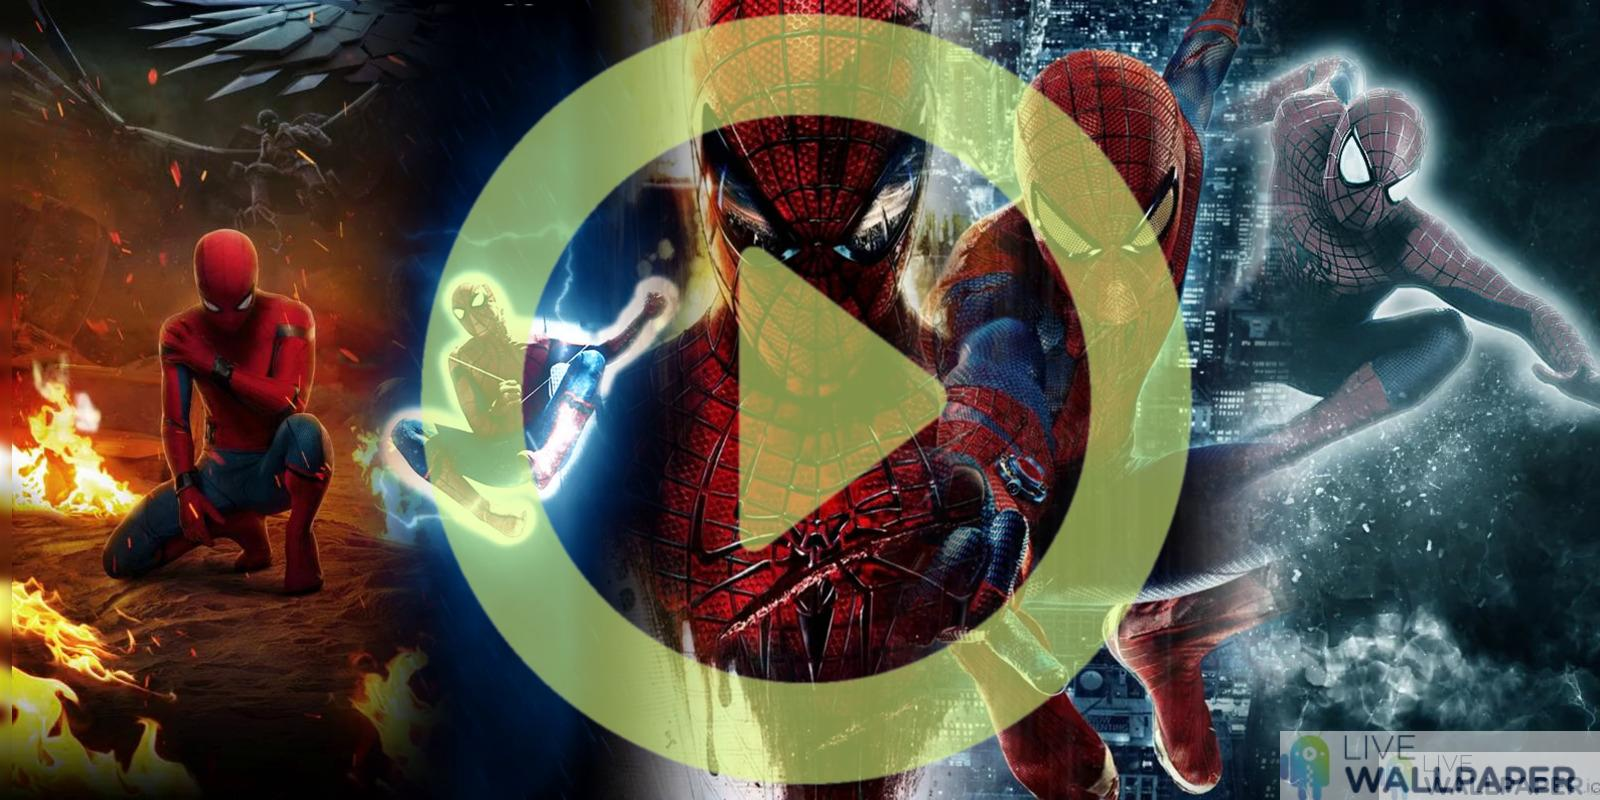 Spiderman Live Wallpaper Collection   App Store for ...